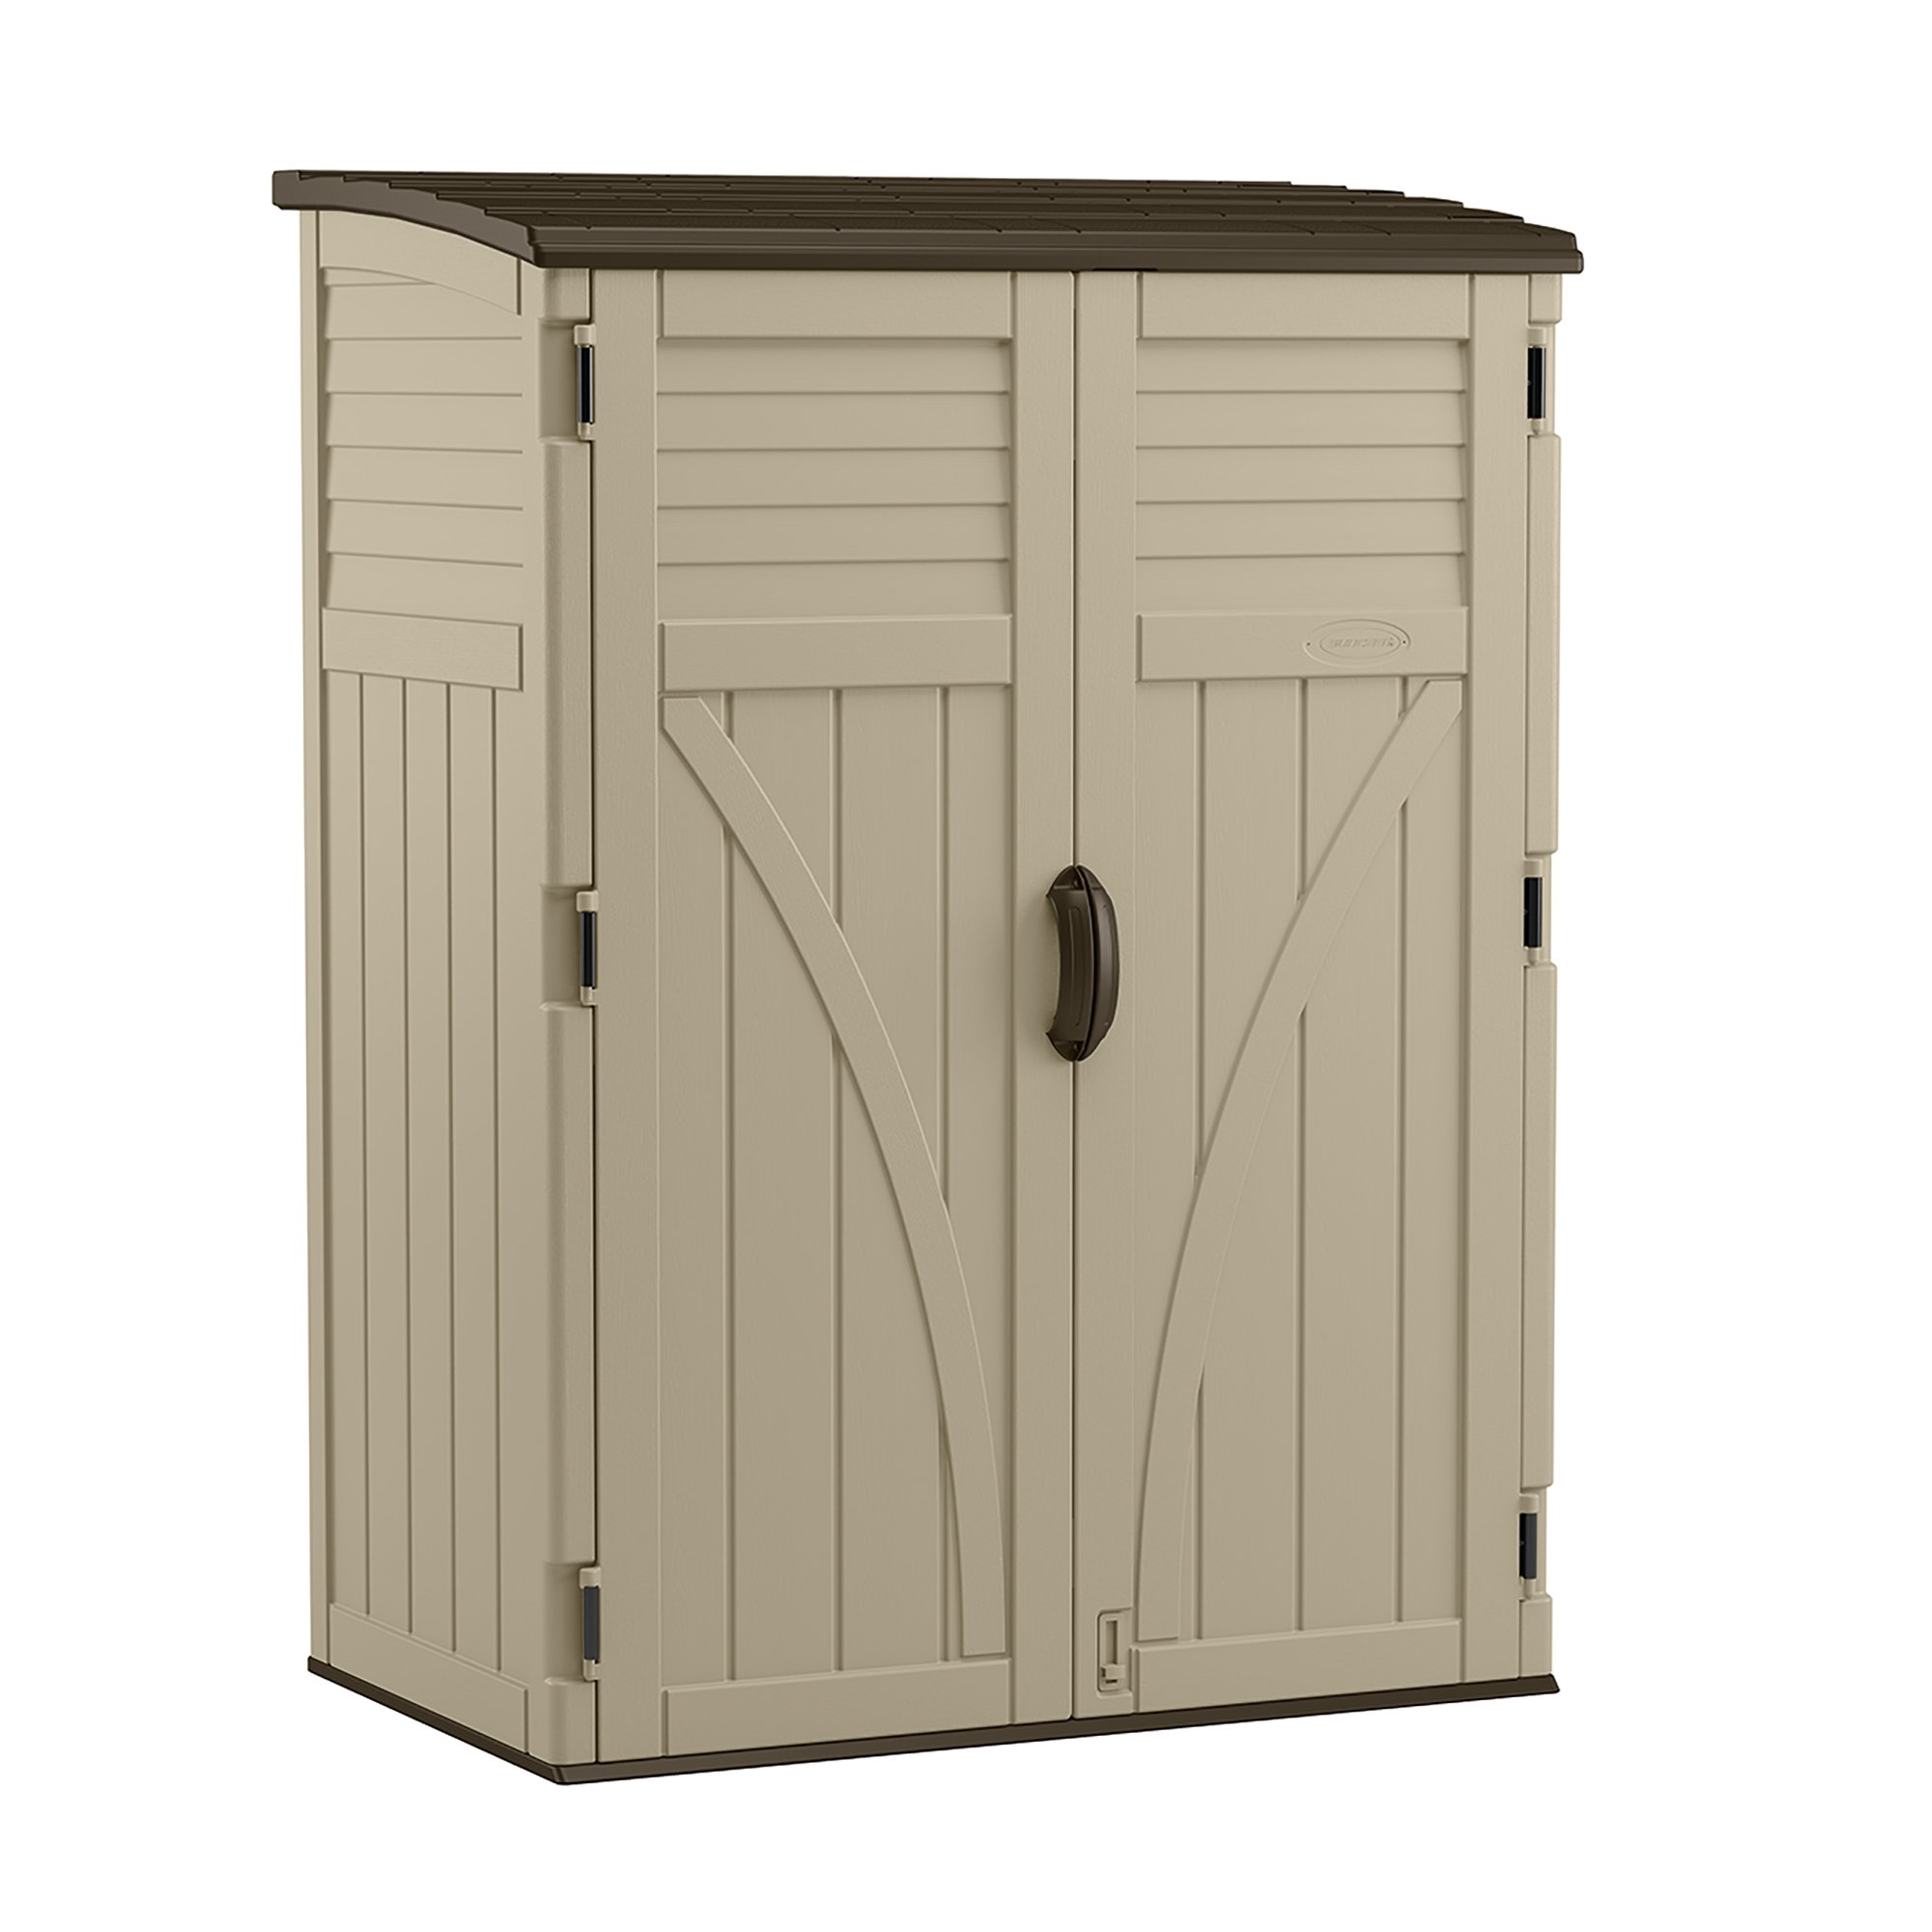 Suncast Vertical Shed - Outdoor Storage Shed for Backyards and Patios - 70 Cubic Feet for Garden Tools and Accessories - Sand by Suncast